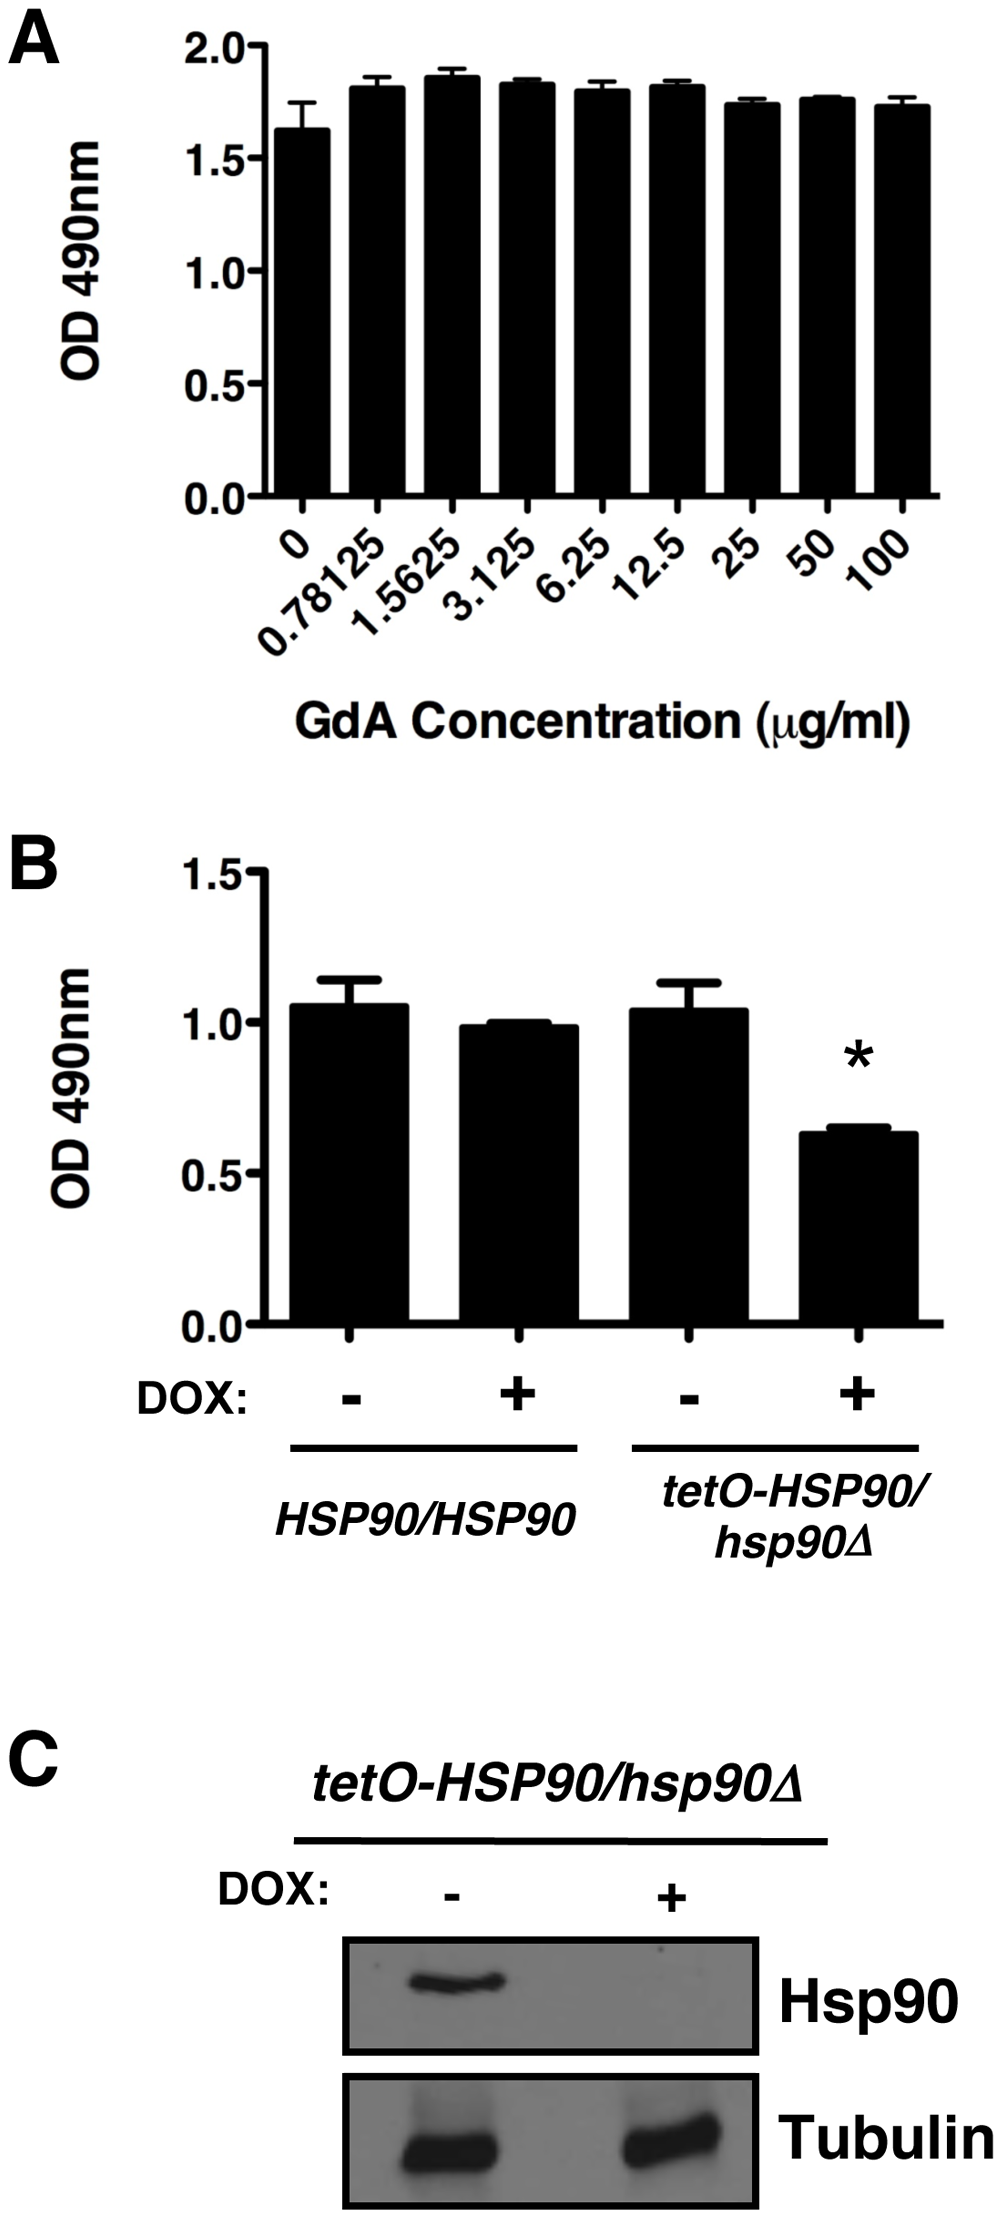 Compromise of Hsp90 function does not block <i>C. albicans</i> biofilm development in vitro.